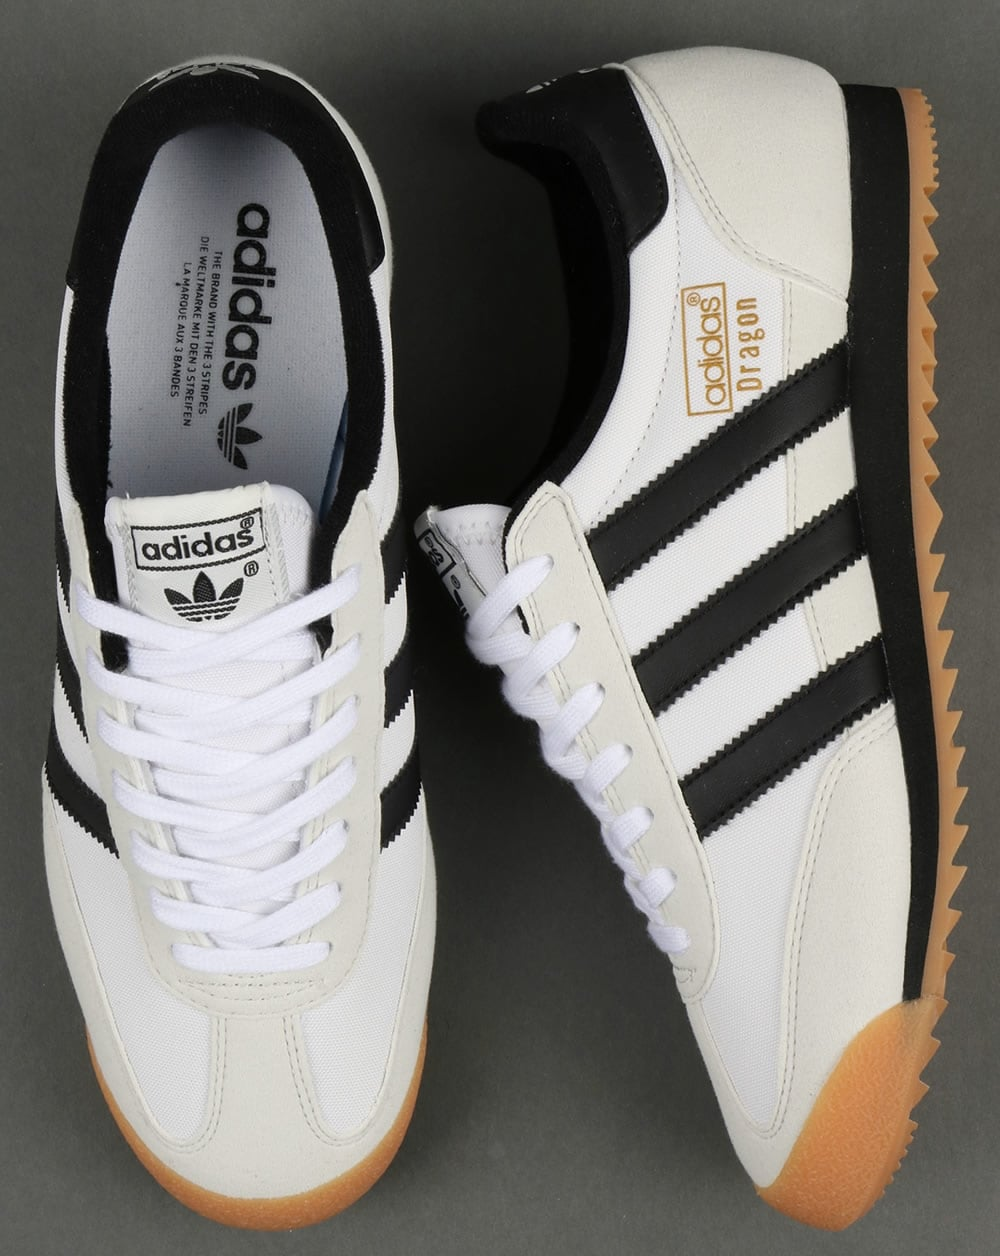 Adidas Dragon Trainers WhiteBlackGum